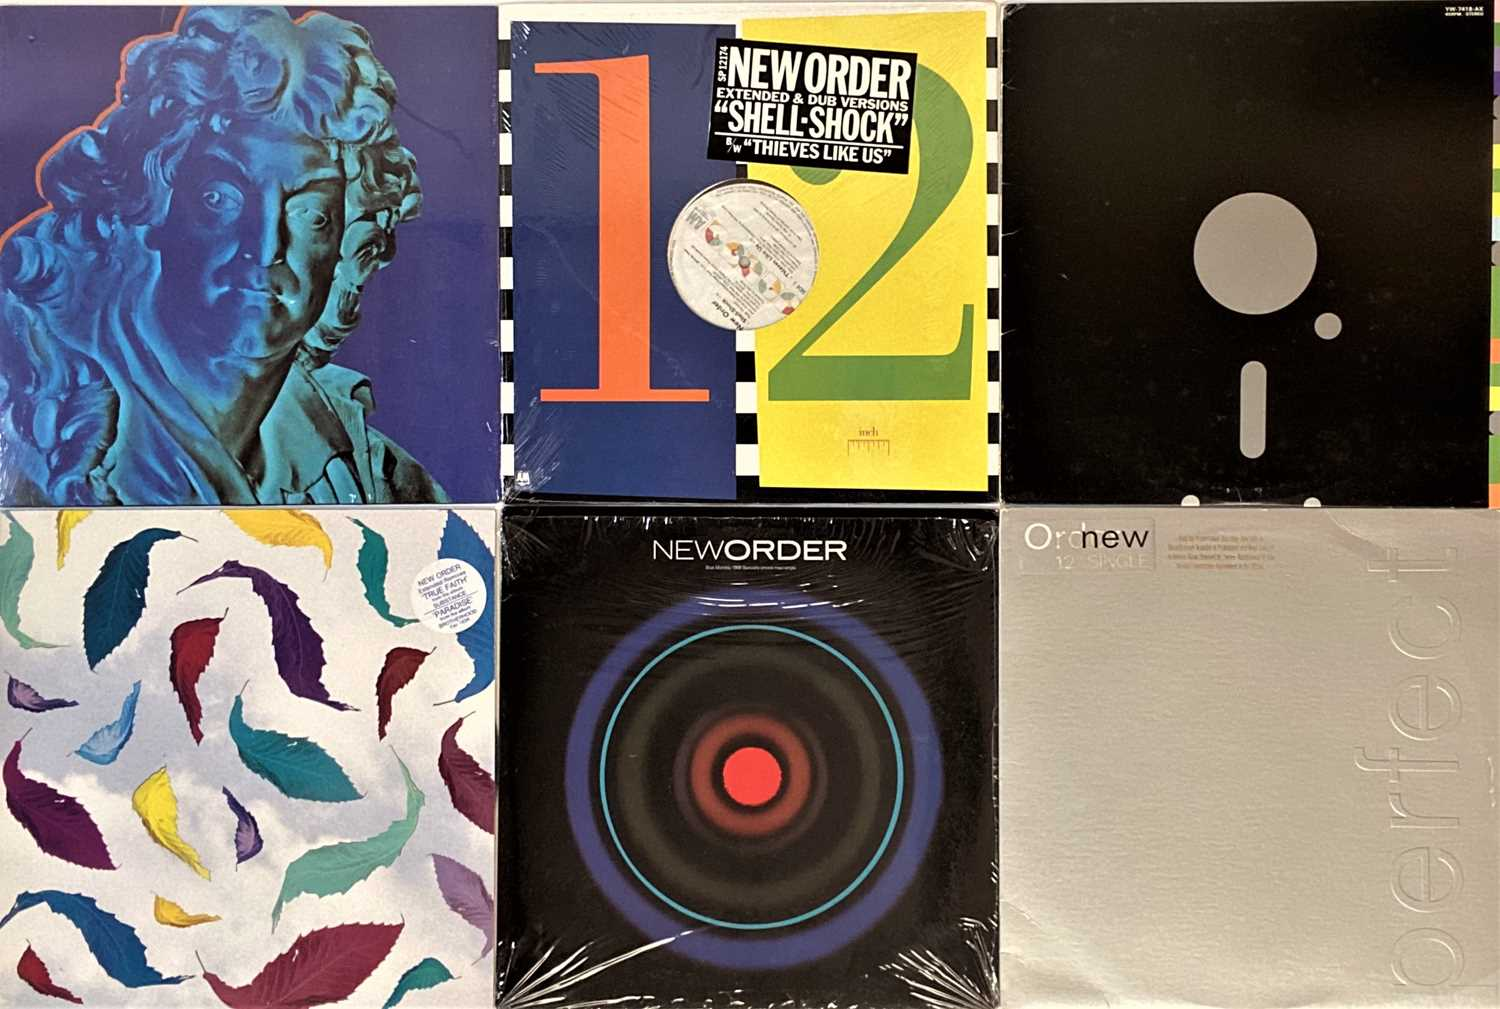 """NEW ORDER - US LP/12"""" COLLECTION - Image 3 of 3"""